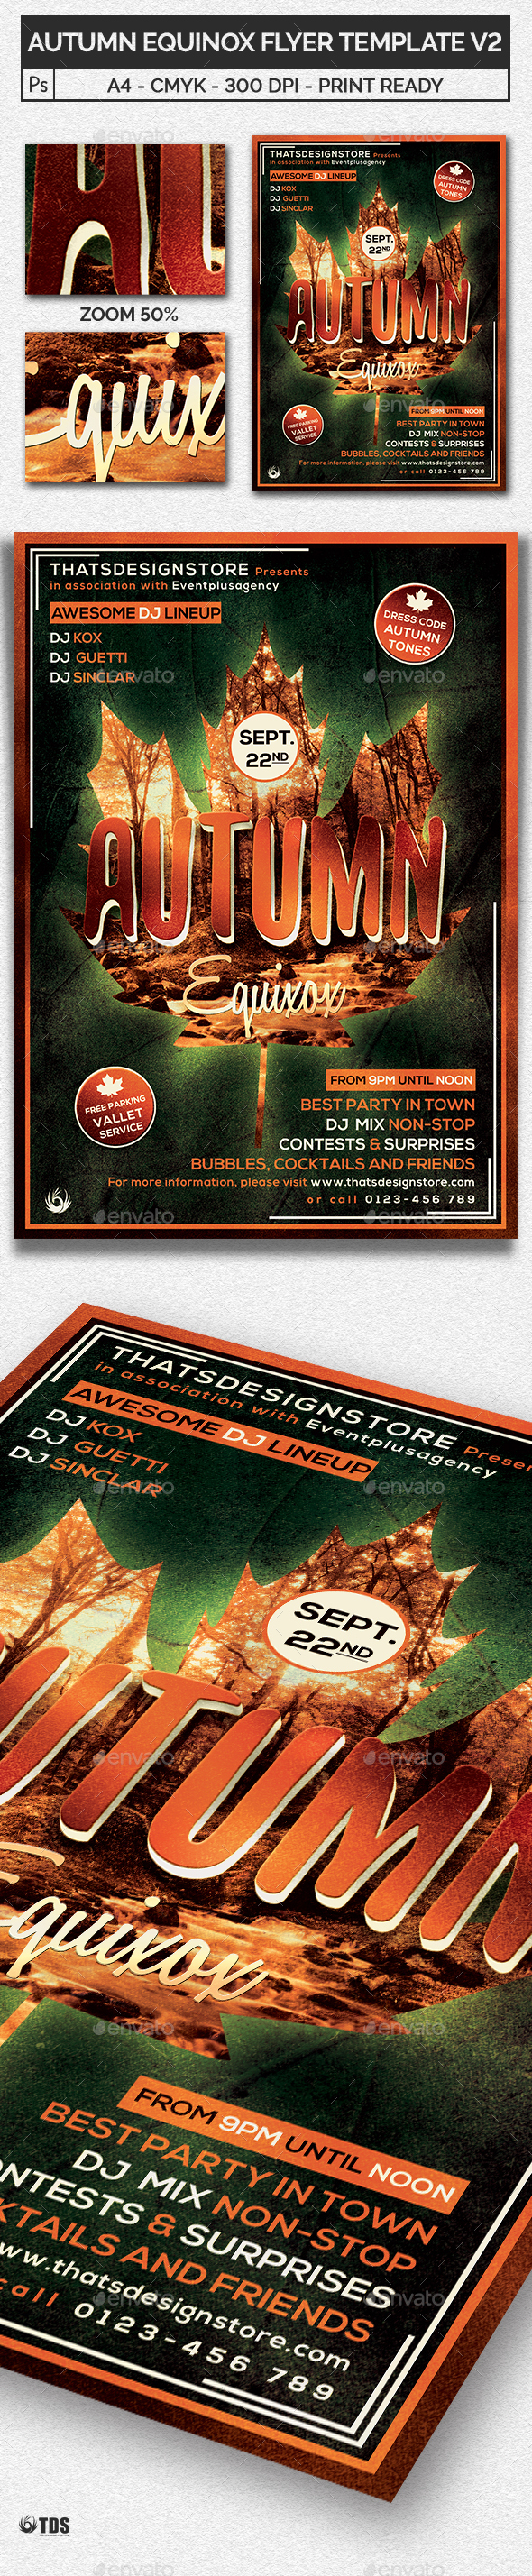 Autumn Equinox Flyer Template V2 - Clubs & Parties Events